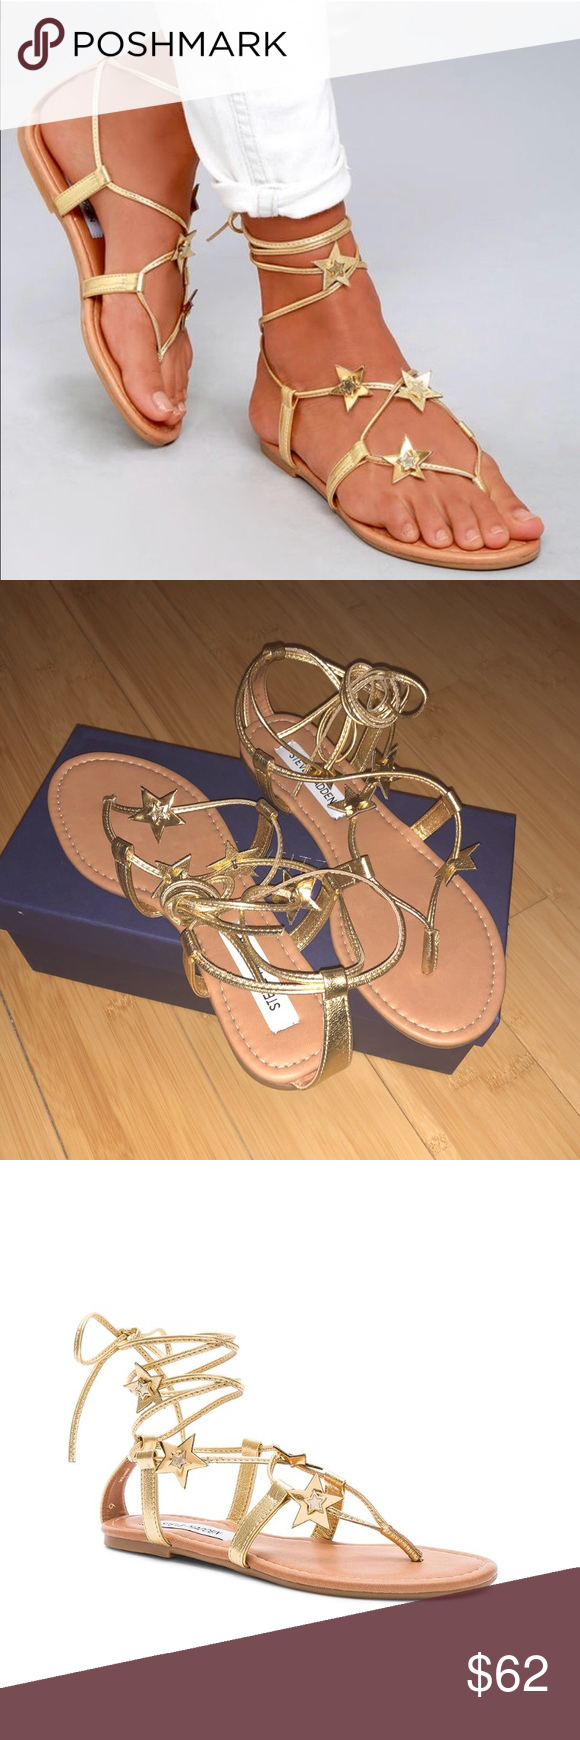 0b39ca0a72bf7 Steve Madden Jupiter Lace-Up Sandal Steve Madden jupiter lace-up sandal in  gold metallic. Star shaped appliqué accents. Lace-up front with wrap tie  closure.